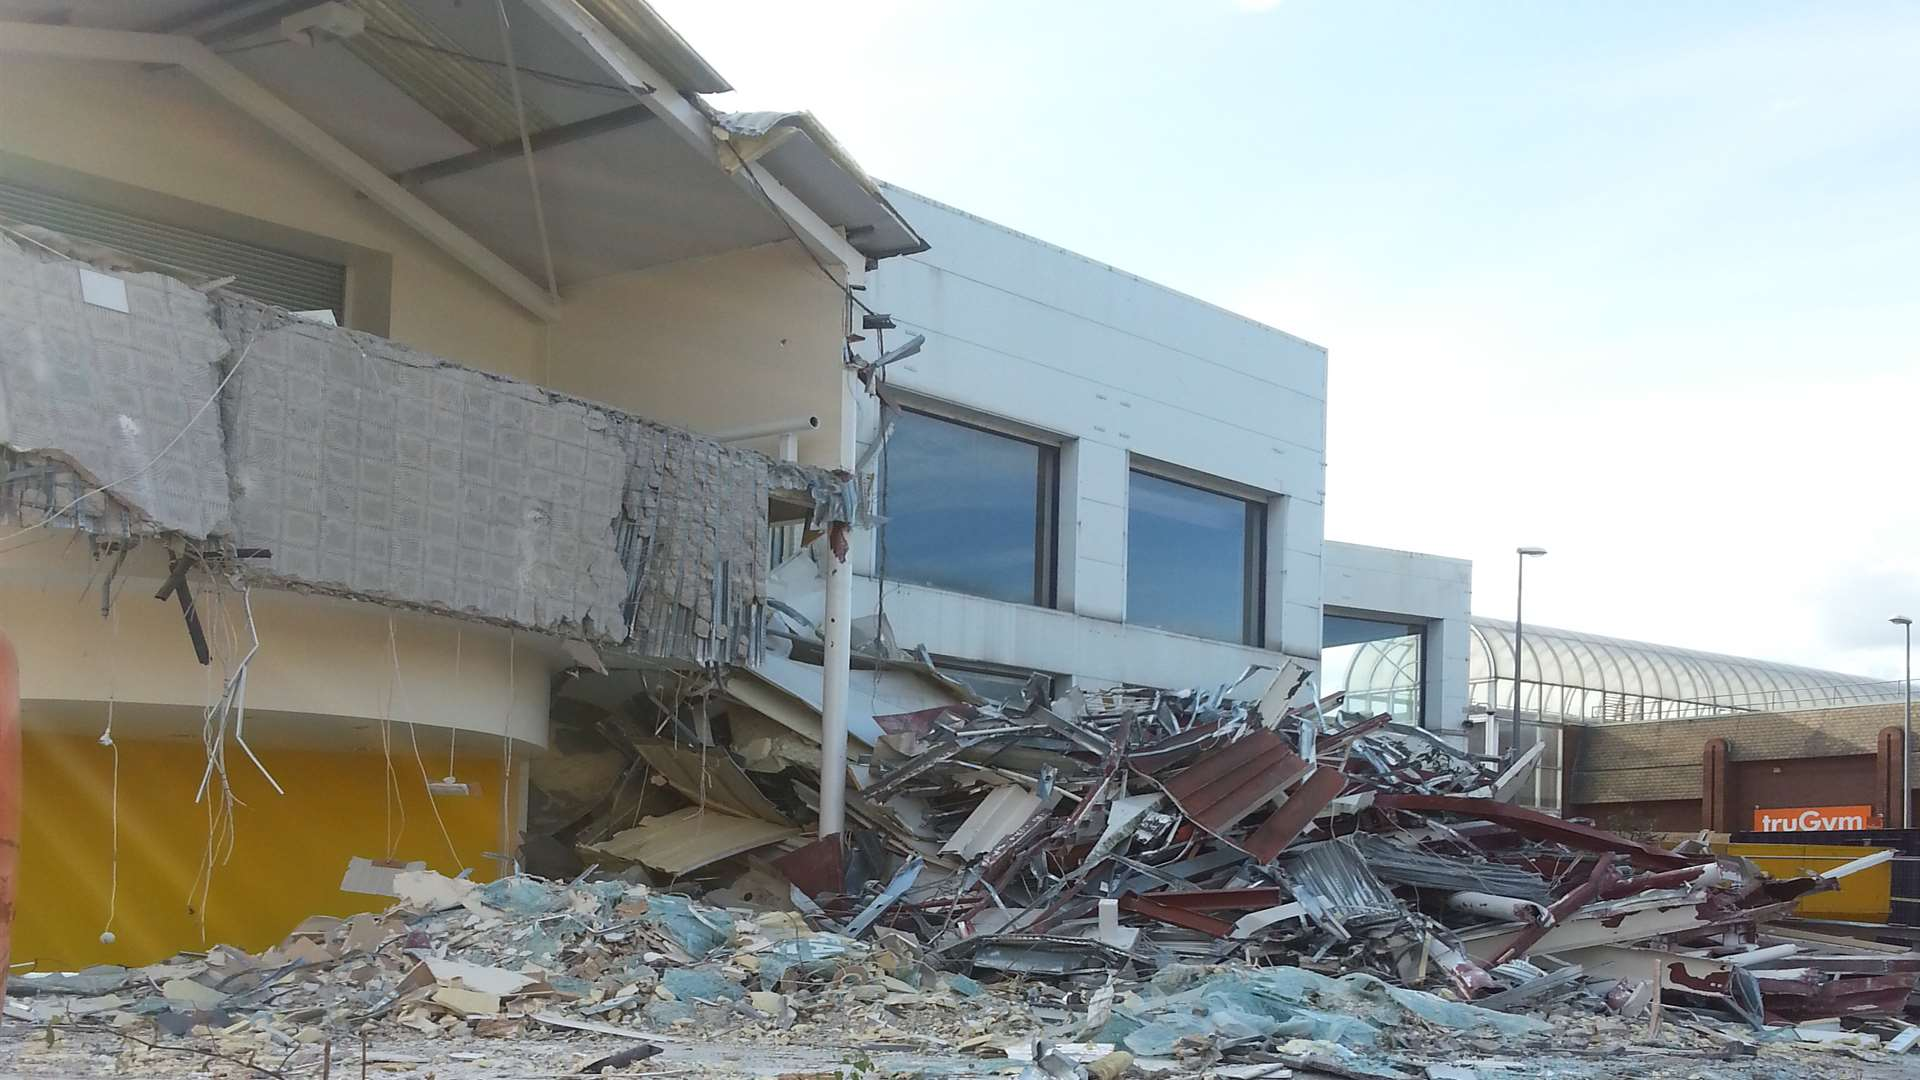 The former Renault garage on the corner of Barker Road and Tonbridge Road comes tumbling down